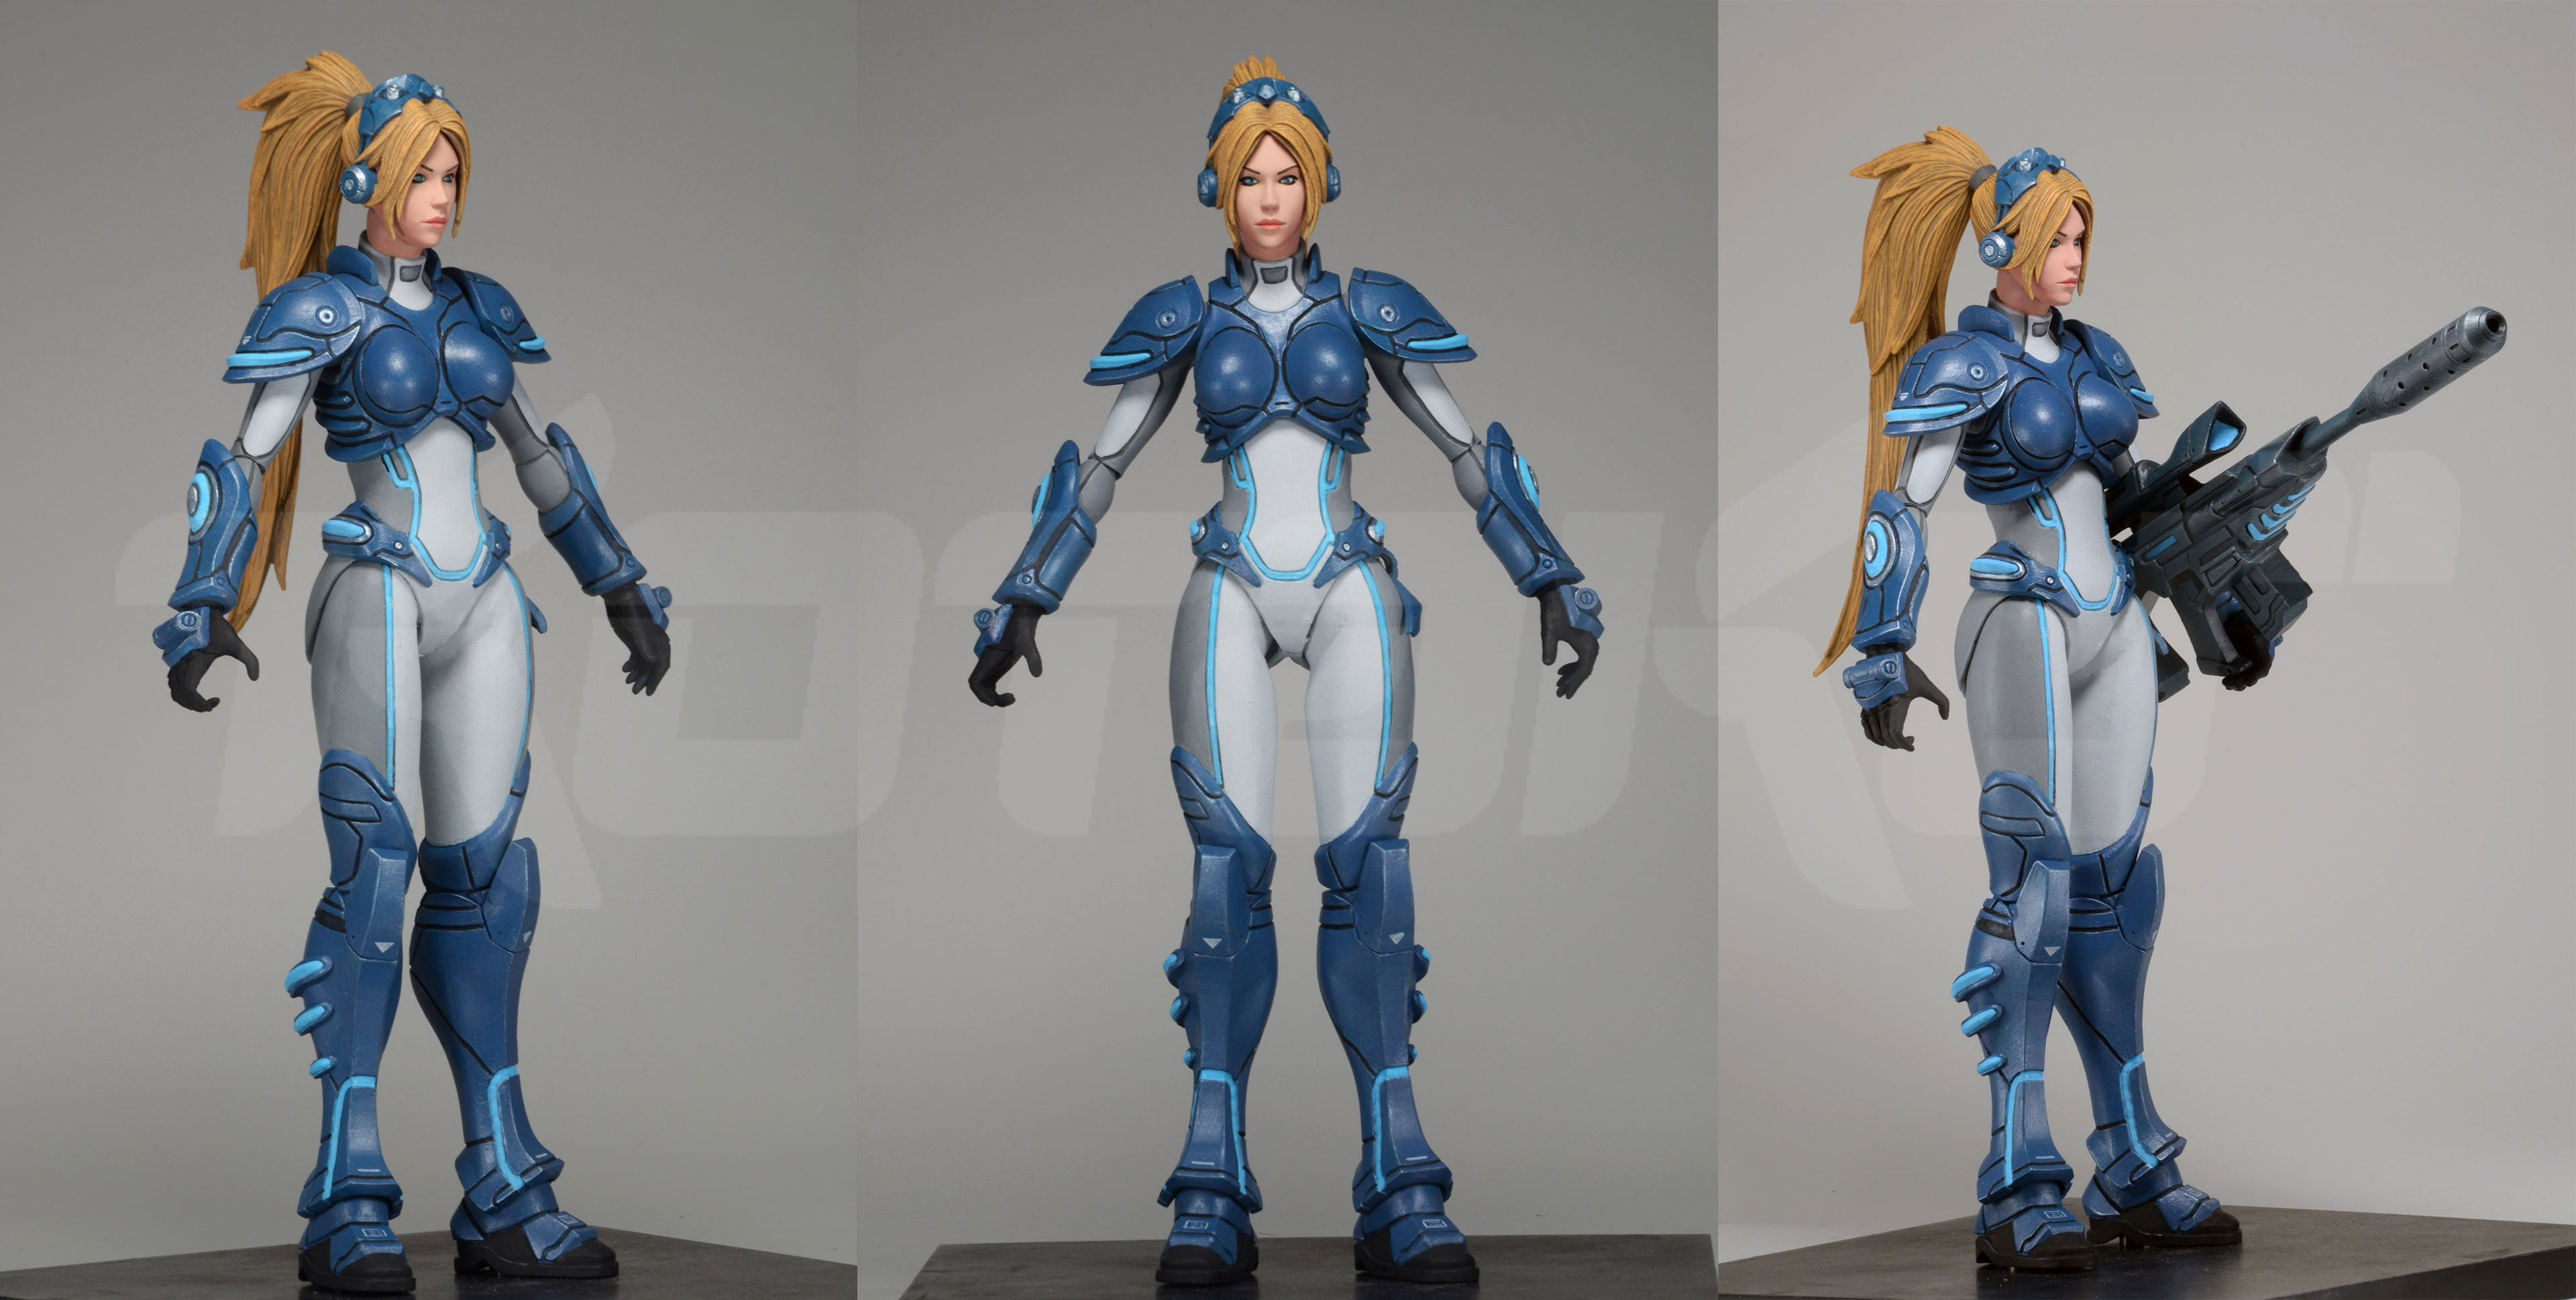 The All-Star Blizzard Toy Line We've Always Wanted